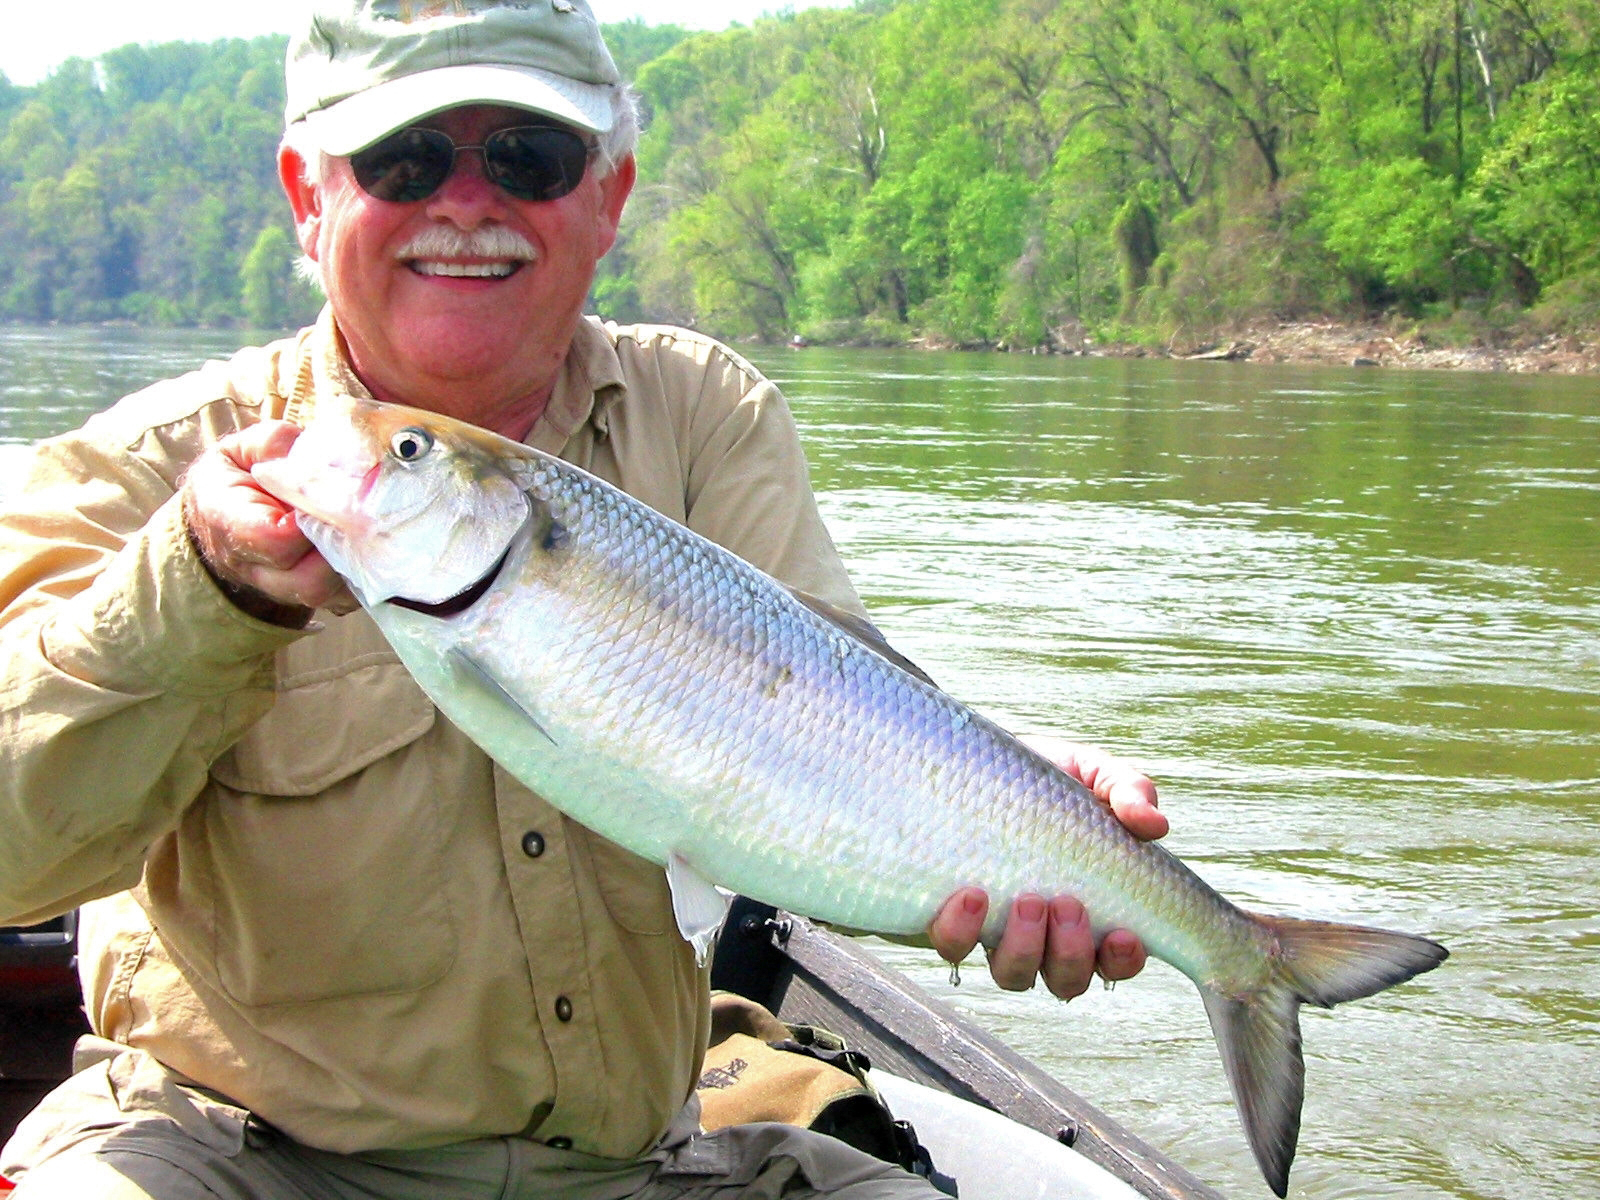 BOB BISHOP HOLDING AN AMERICAN SHAD CAUGHT IN THE POTOMAC AT FLETCHER'S COVE. PHOTO TAKEN BY TOM GUFFAIN.